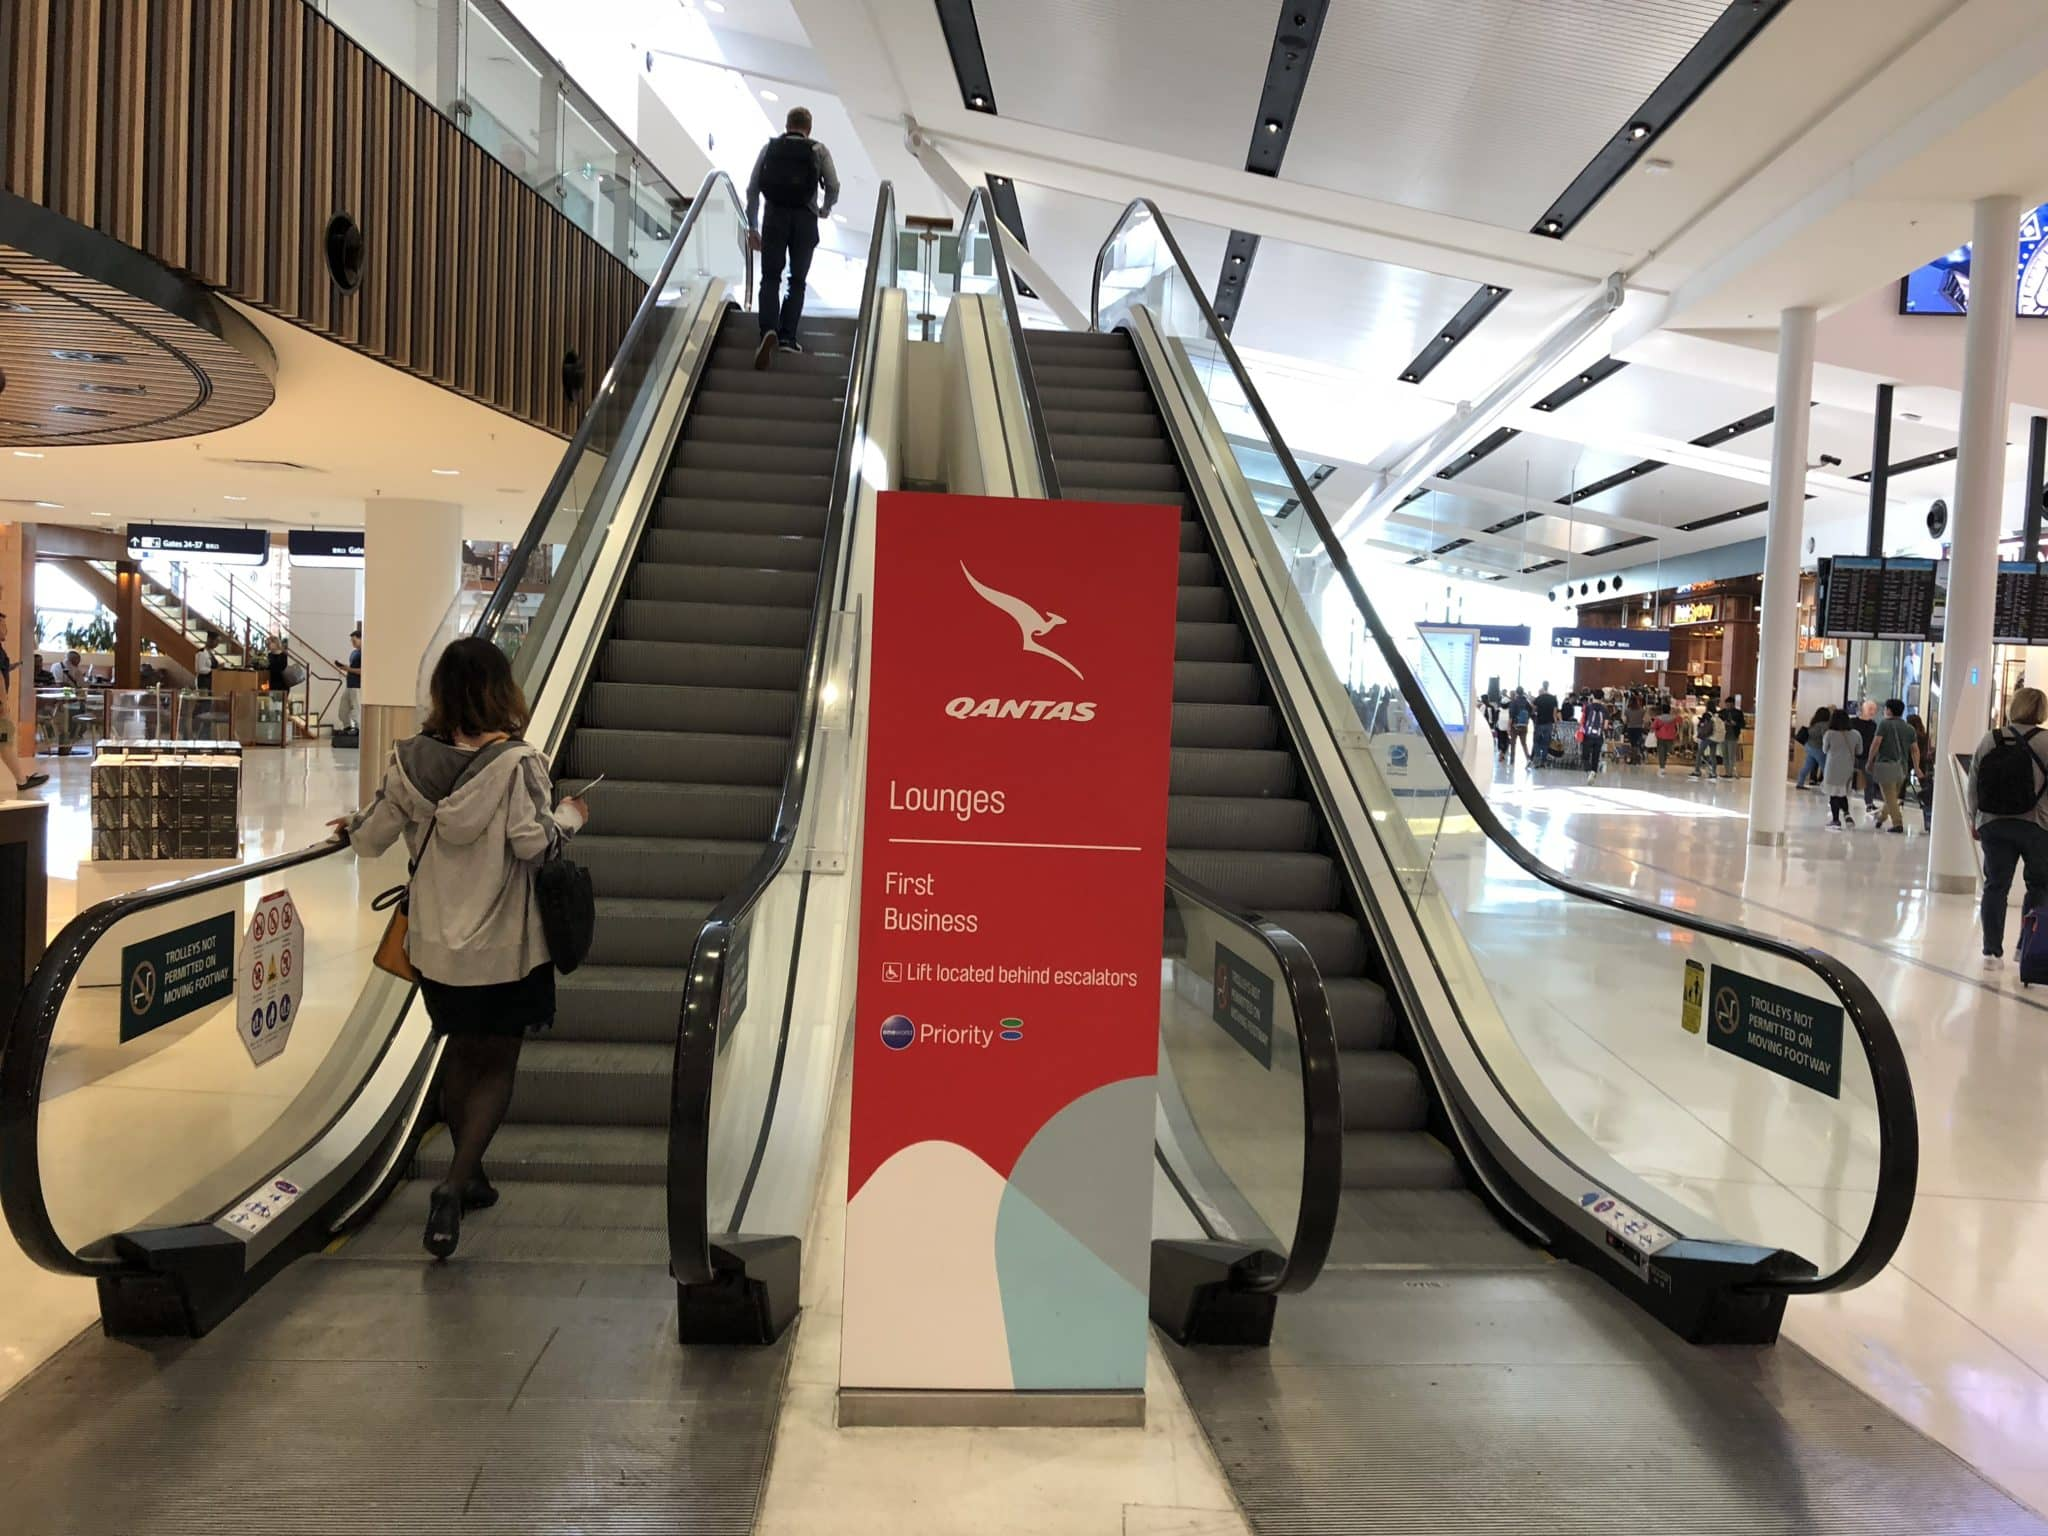 Qantas International Business Lounge Sydney Rolltreppe Lounges